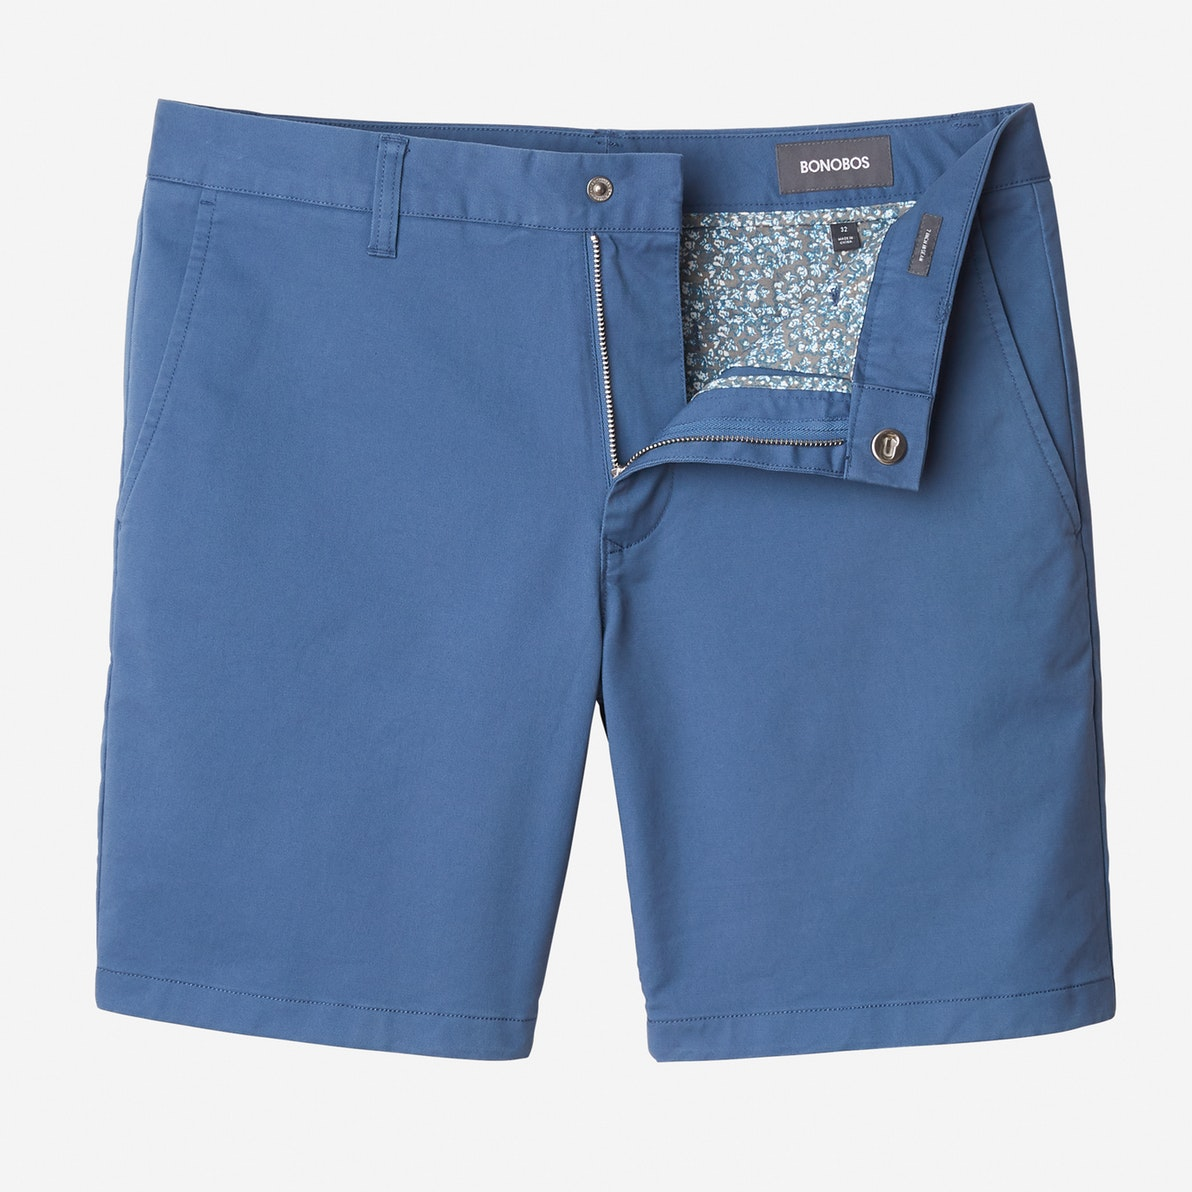 Bonobos Med Blue Chino Shorts.jpg